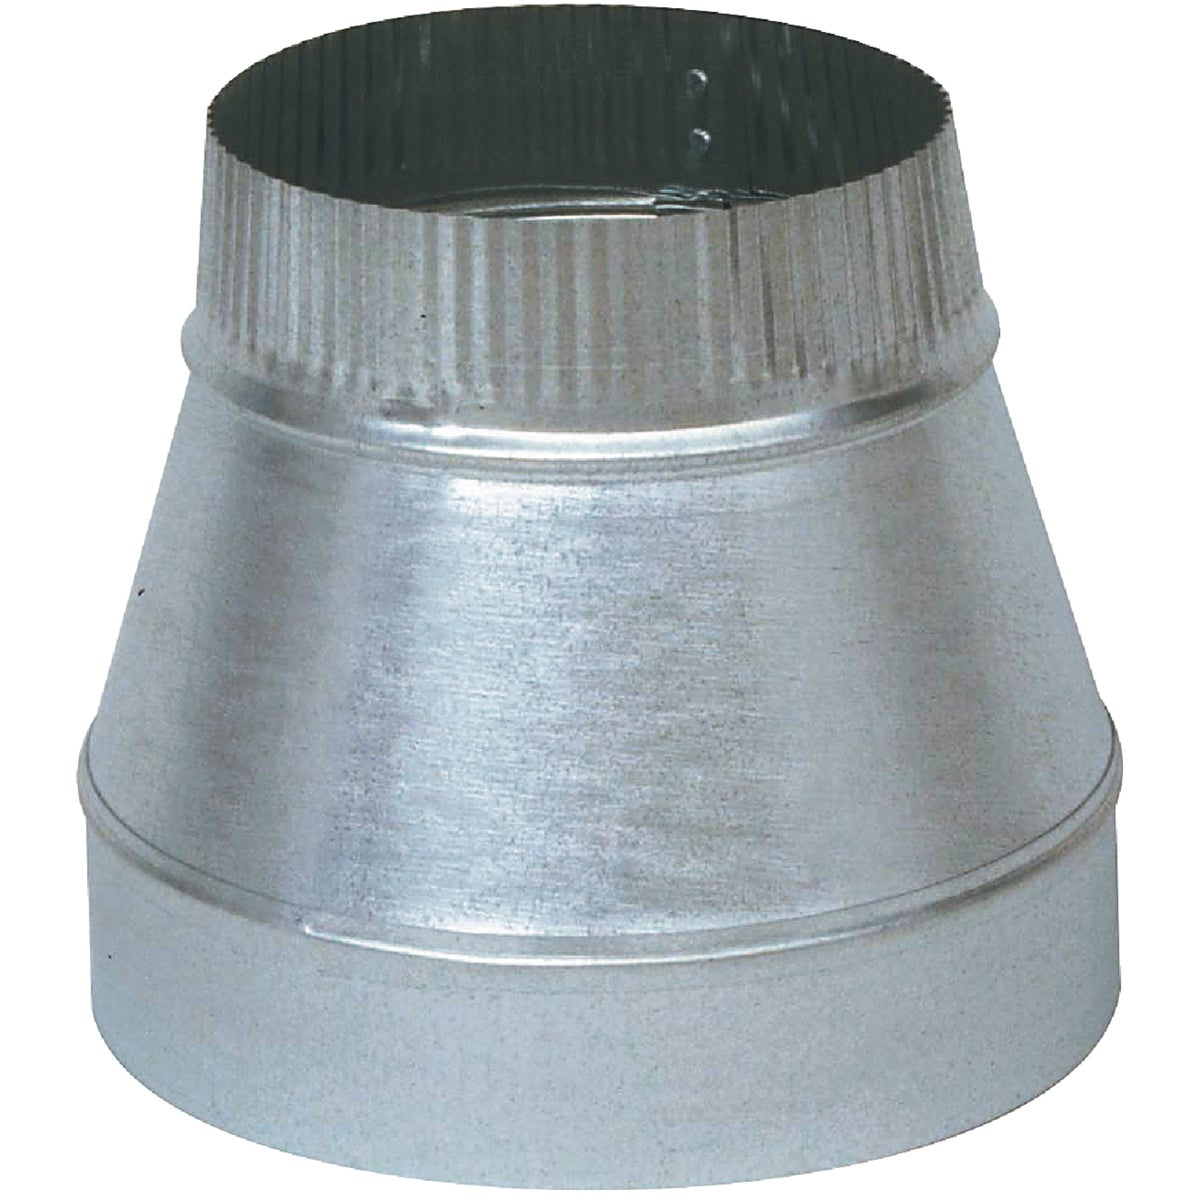 7X6 GALV REDUCER - GV1350 by Imperial Mfg Group